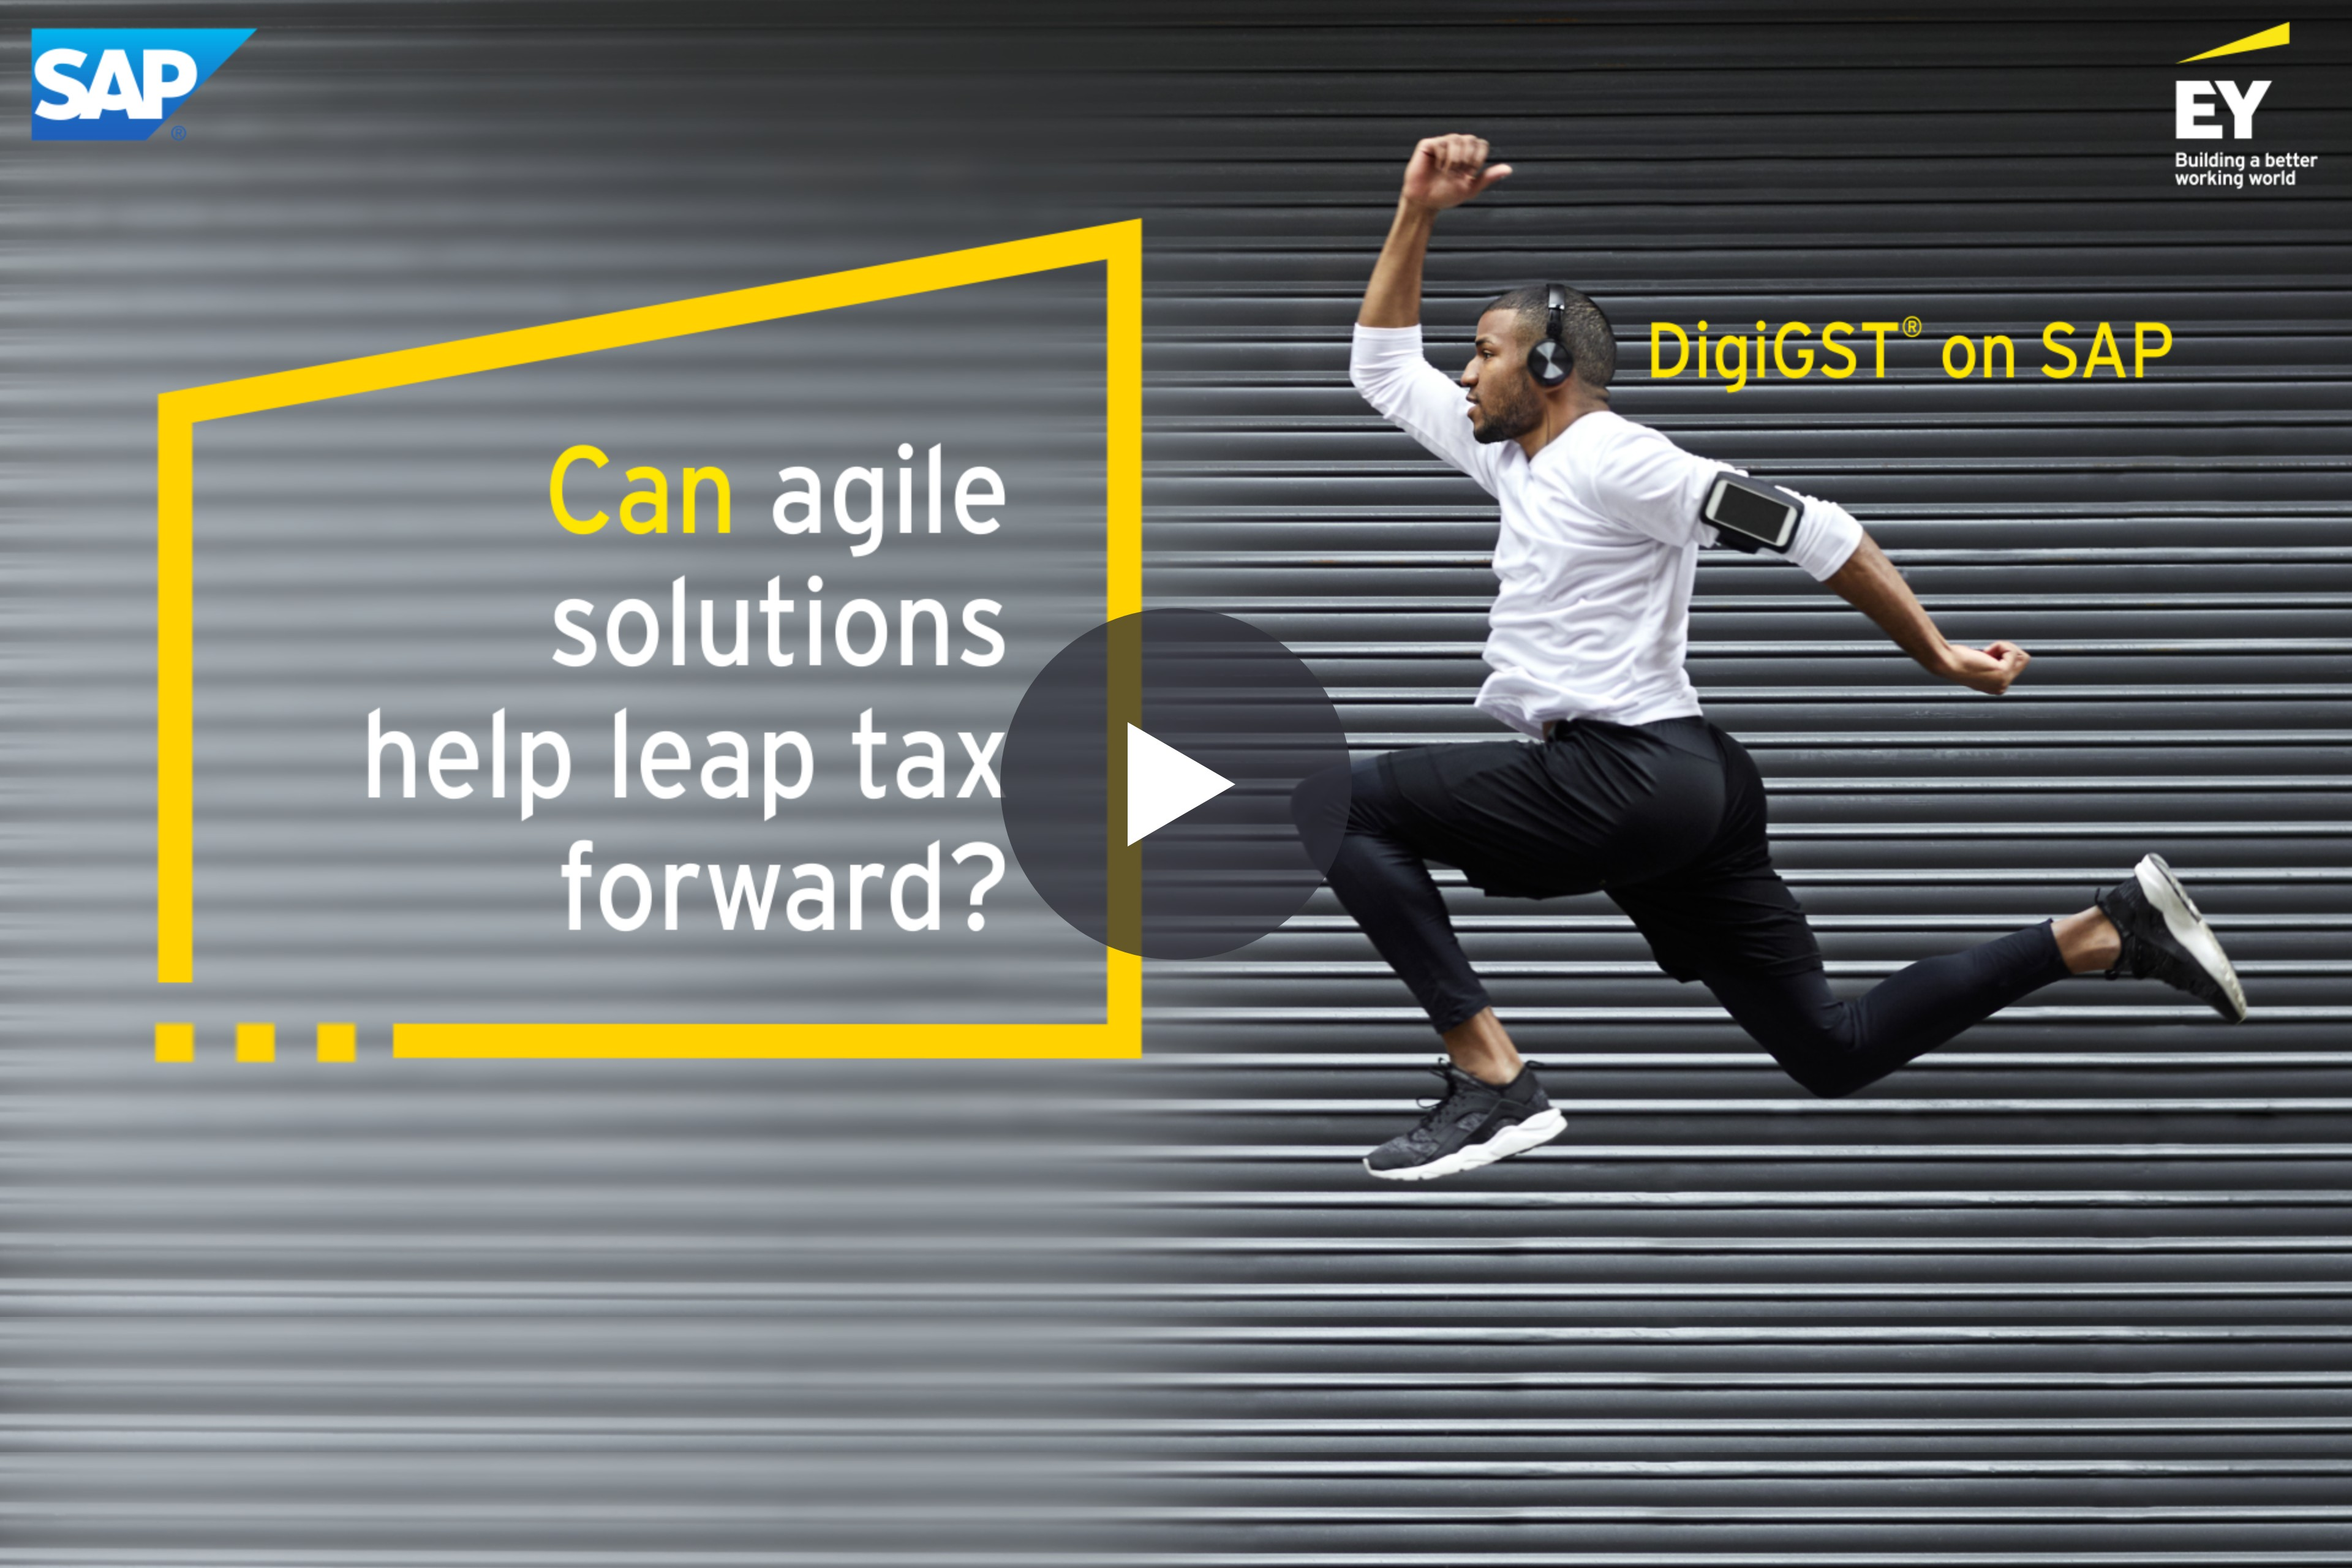 Collaboration of DigiGST and SAP